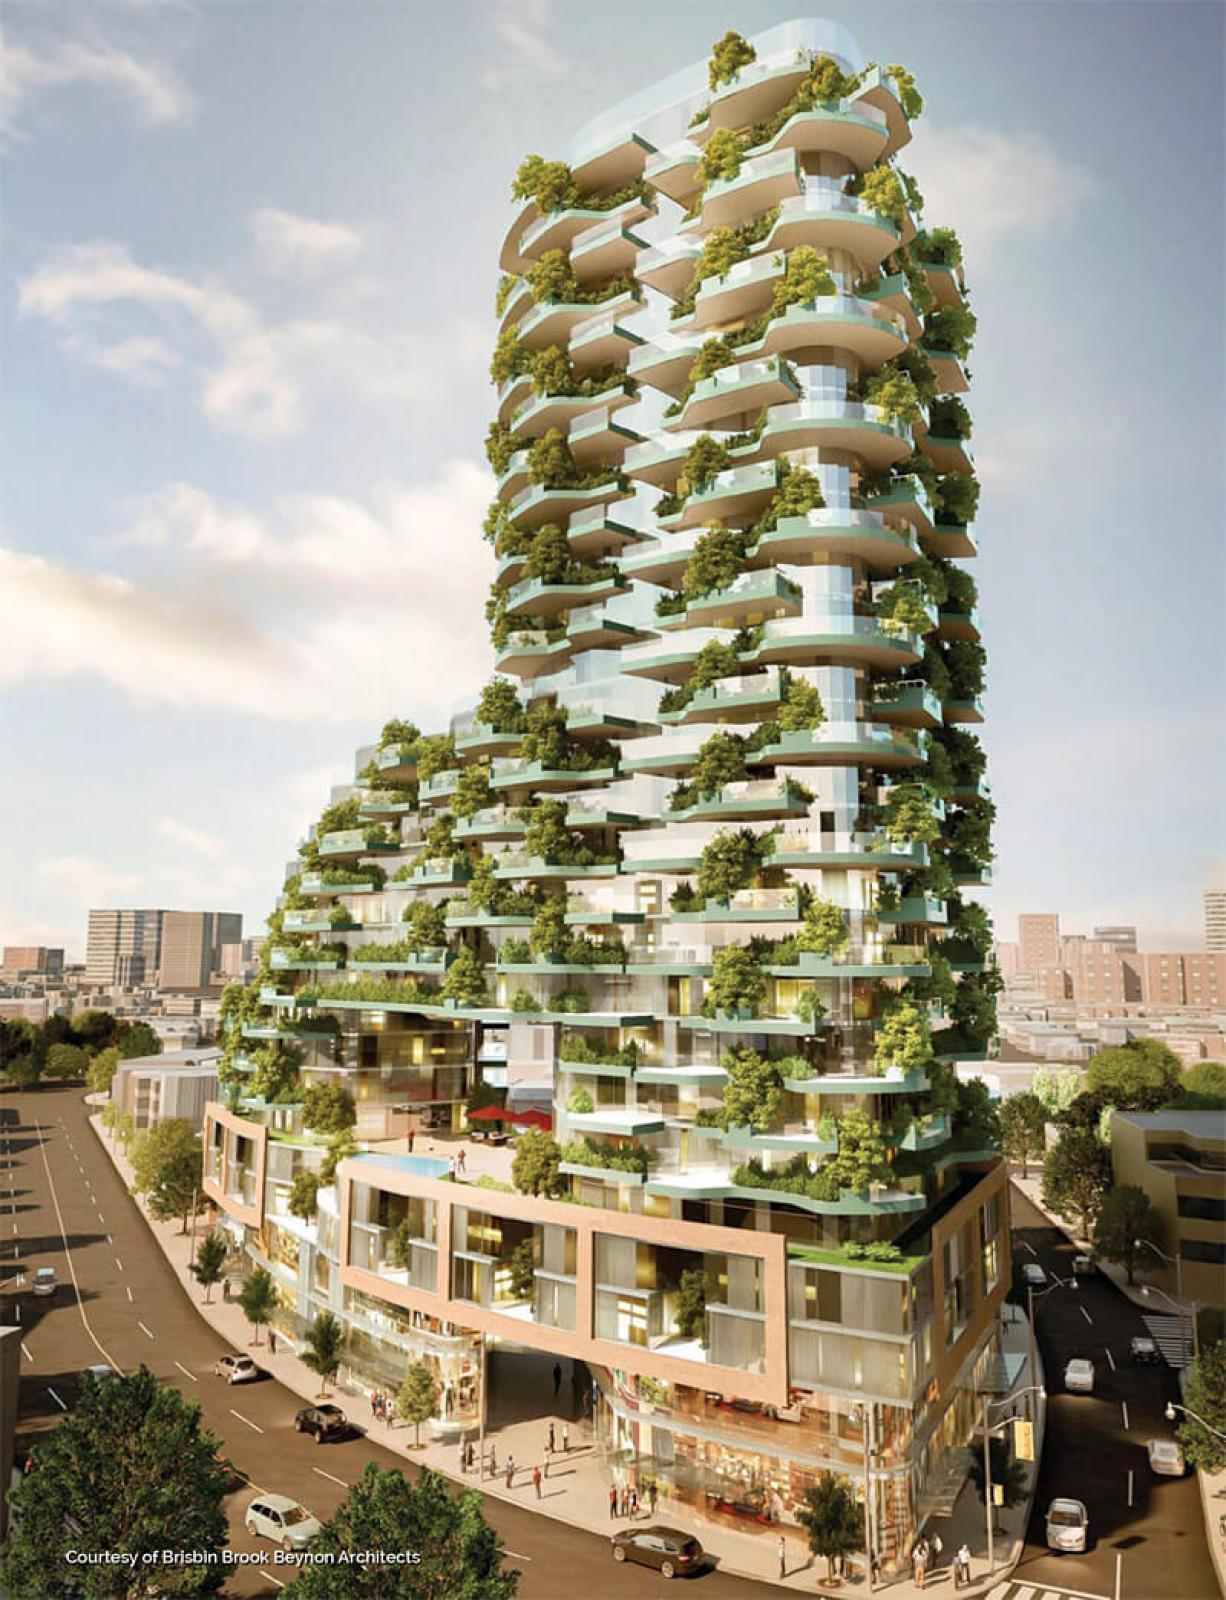 Architects around the world are now considering plants as an integral part of a buildings design.